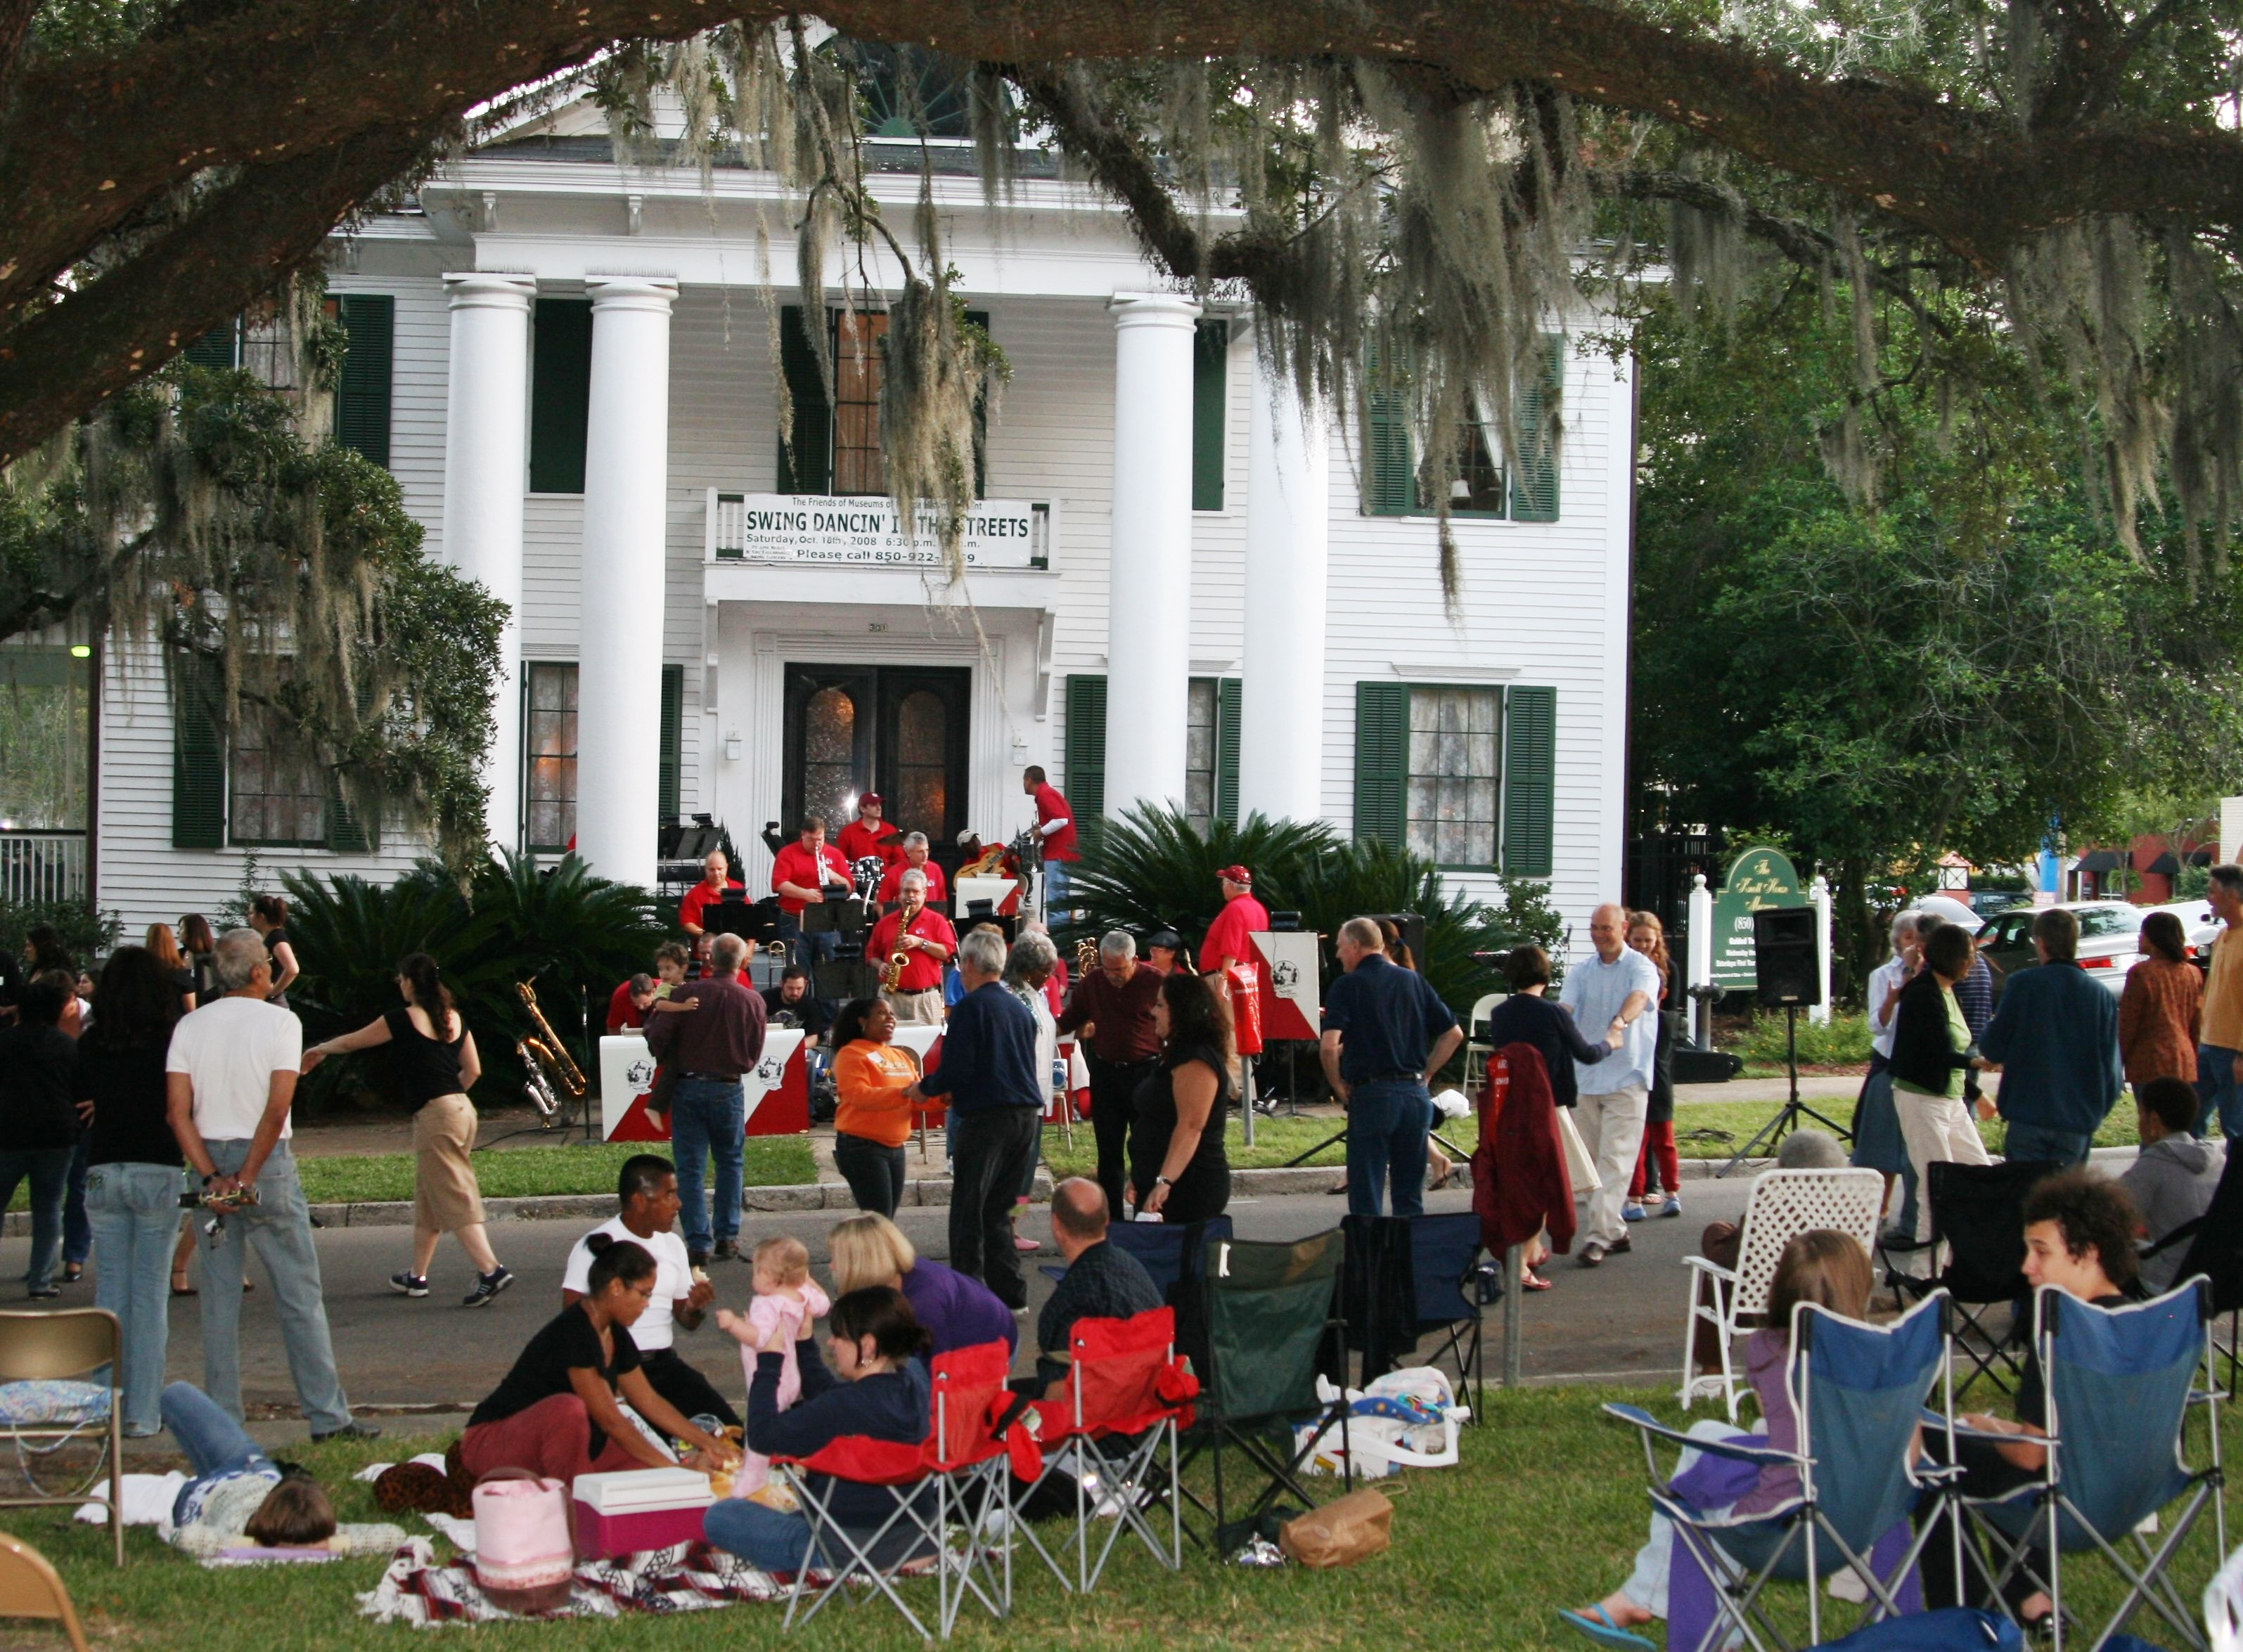 Tallahassee residents swing dancing at the Knott House (1842) Museum